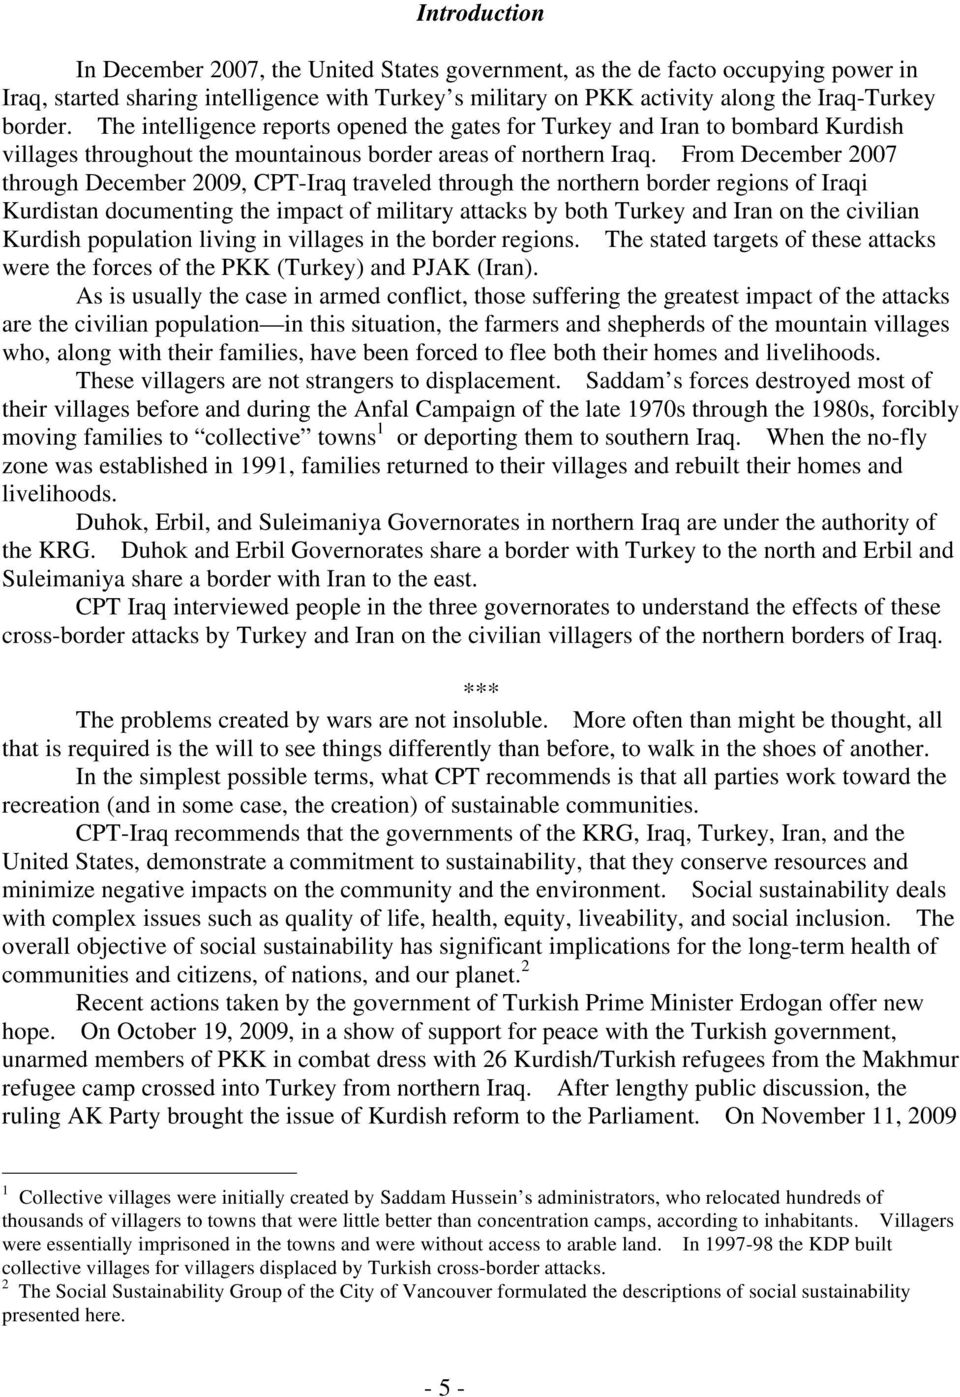 From December 2007 through December 2009, CPT-Iraq traveled through the northern border regions of Iraqi Kurdistan documenting the impact of military attacks by both Turkey and Iran on the civilian